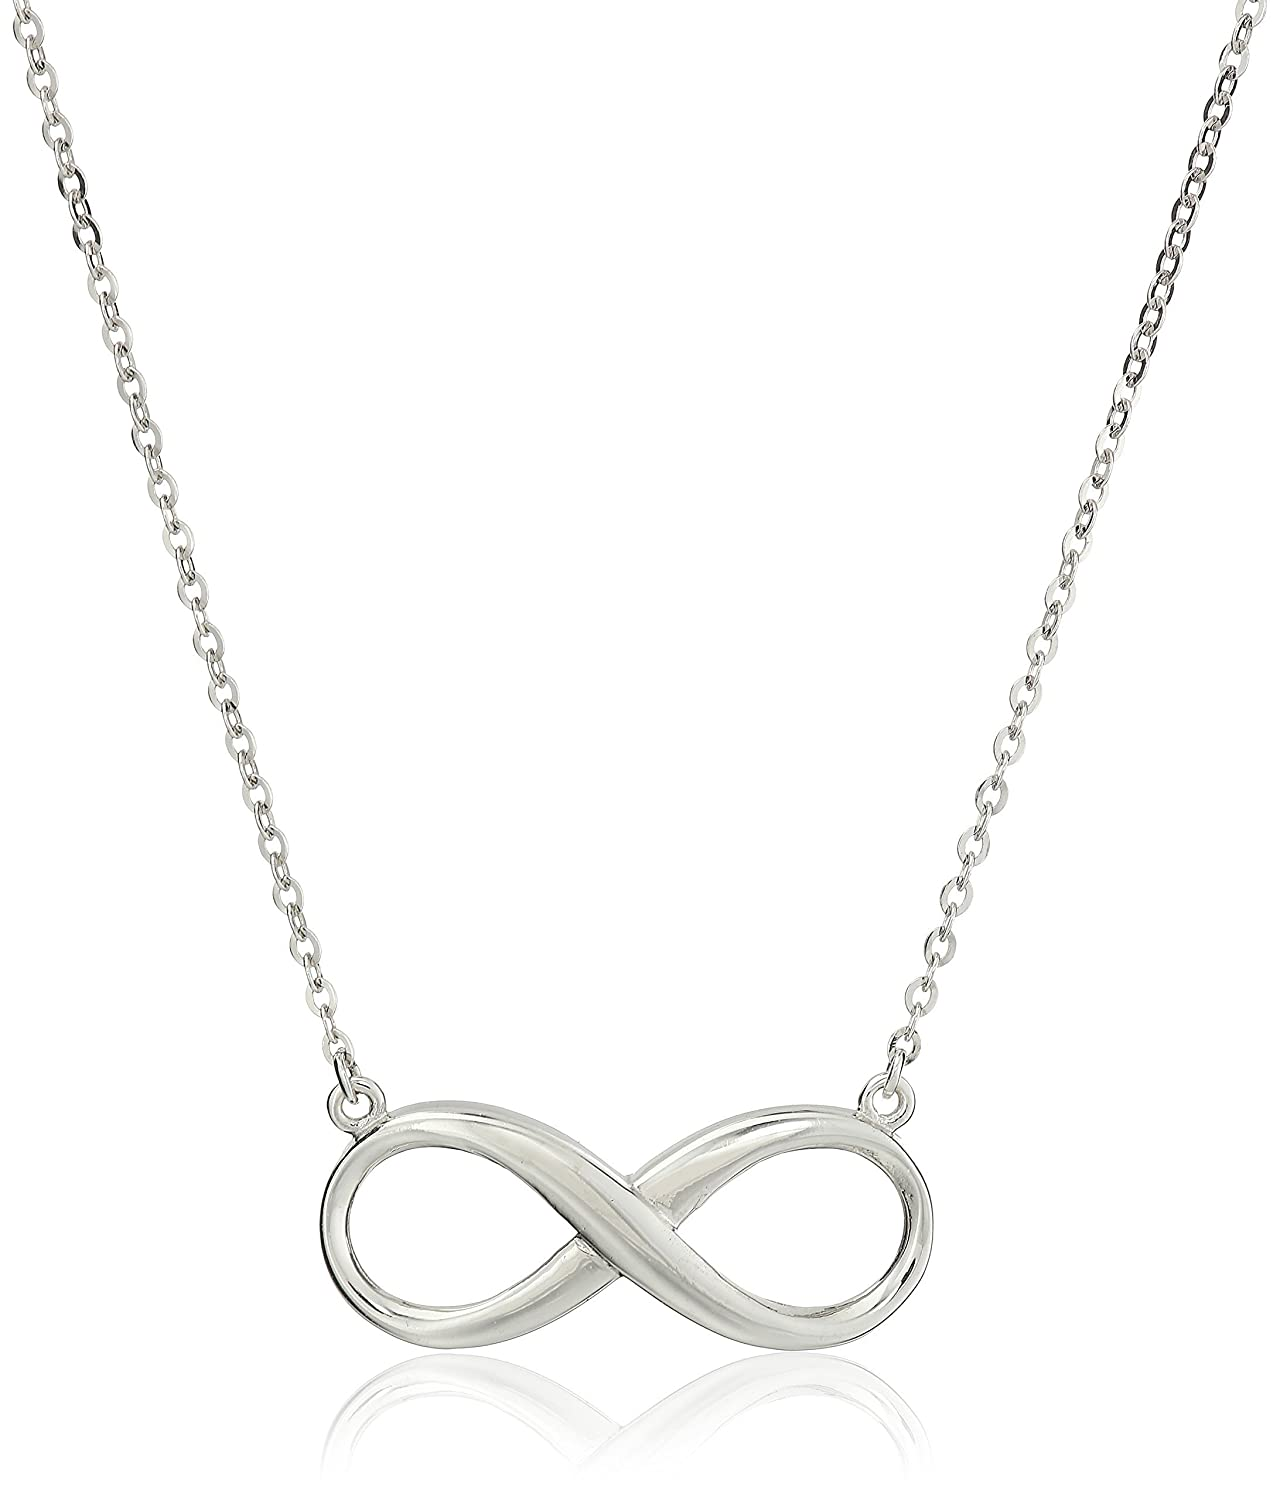 HACOOL 925 Sterling Silver Eternal Infinity Charm with Rolo Link 16-18 Chain Adjustable Necklace